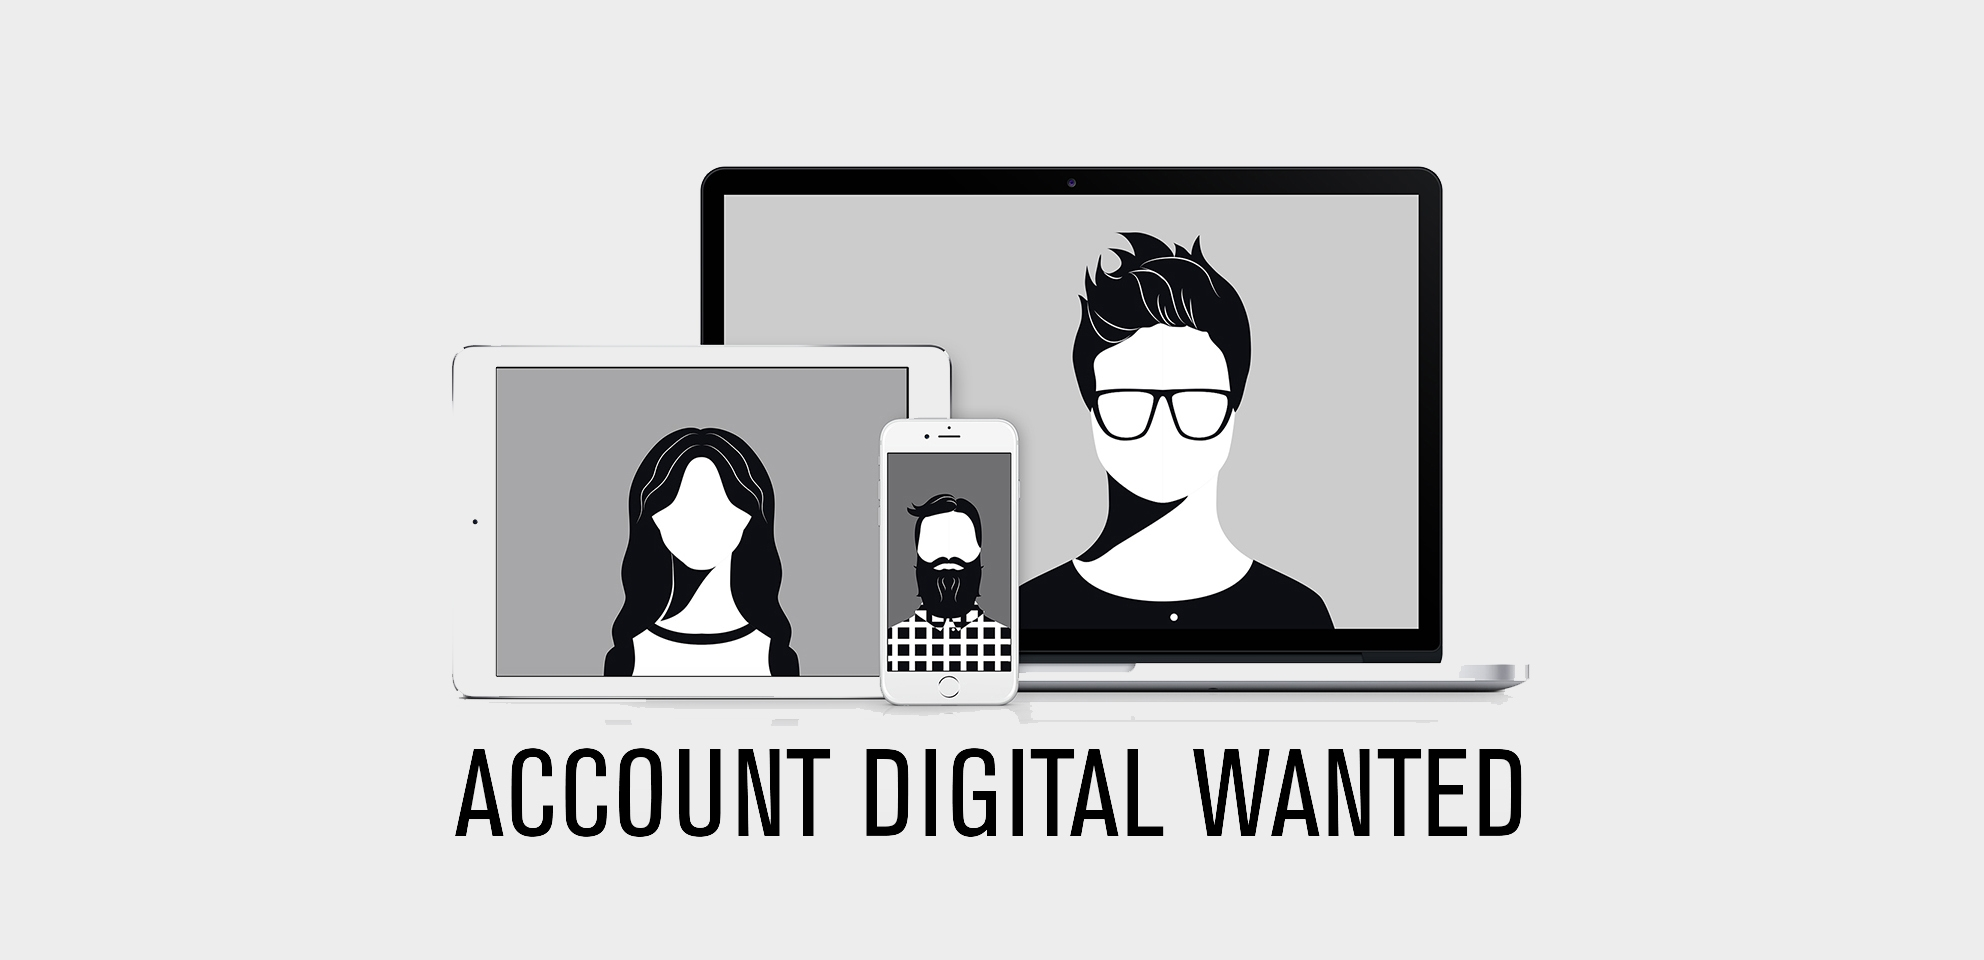 Account / Chef.fe de projet digital wanted